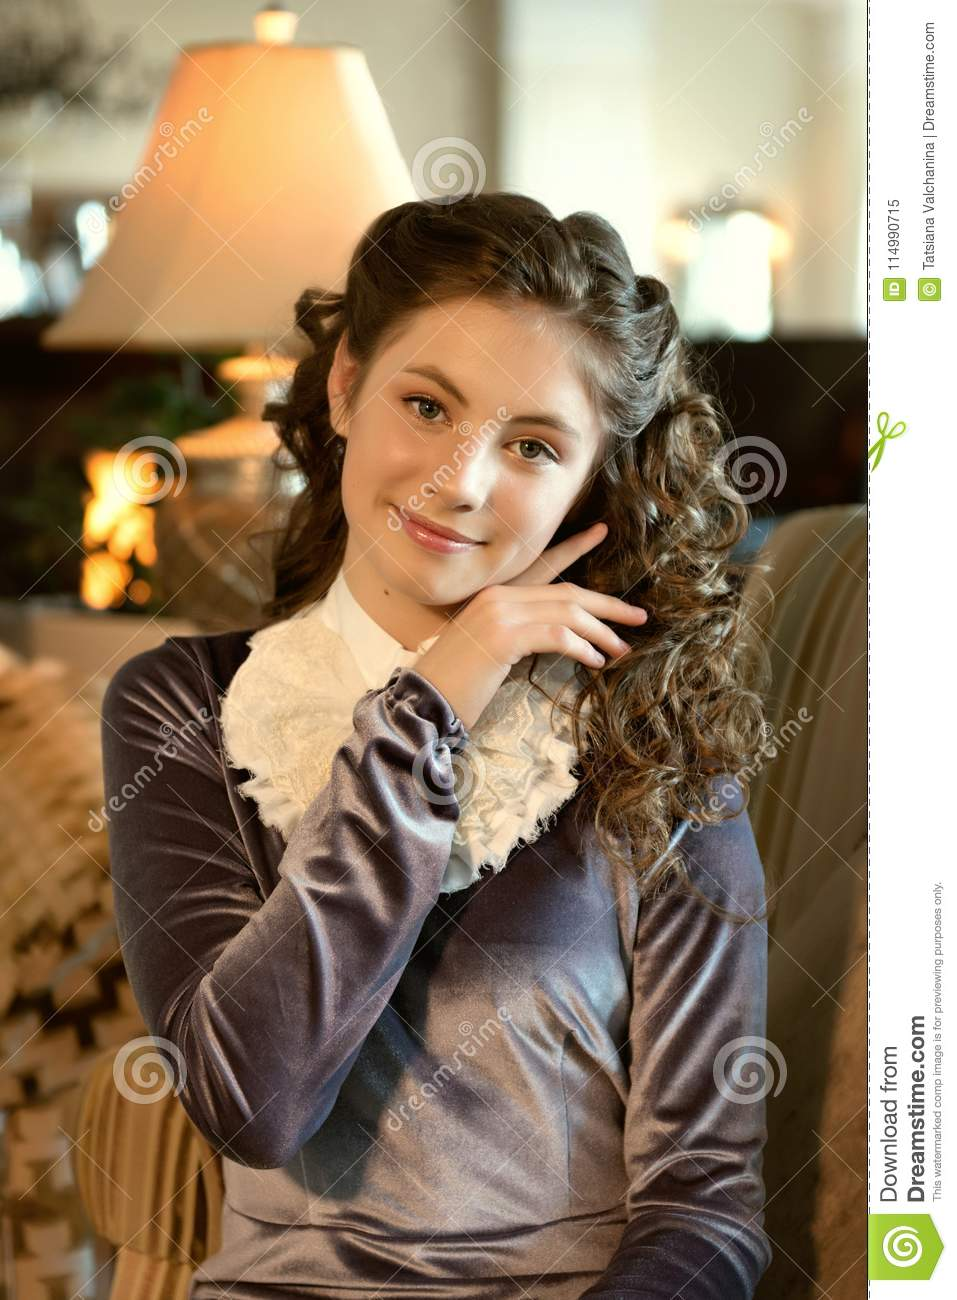 Portrait of a gentle romantic cute modest lady girl in vintage clothes